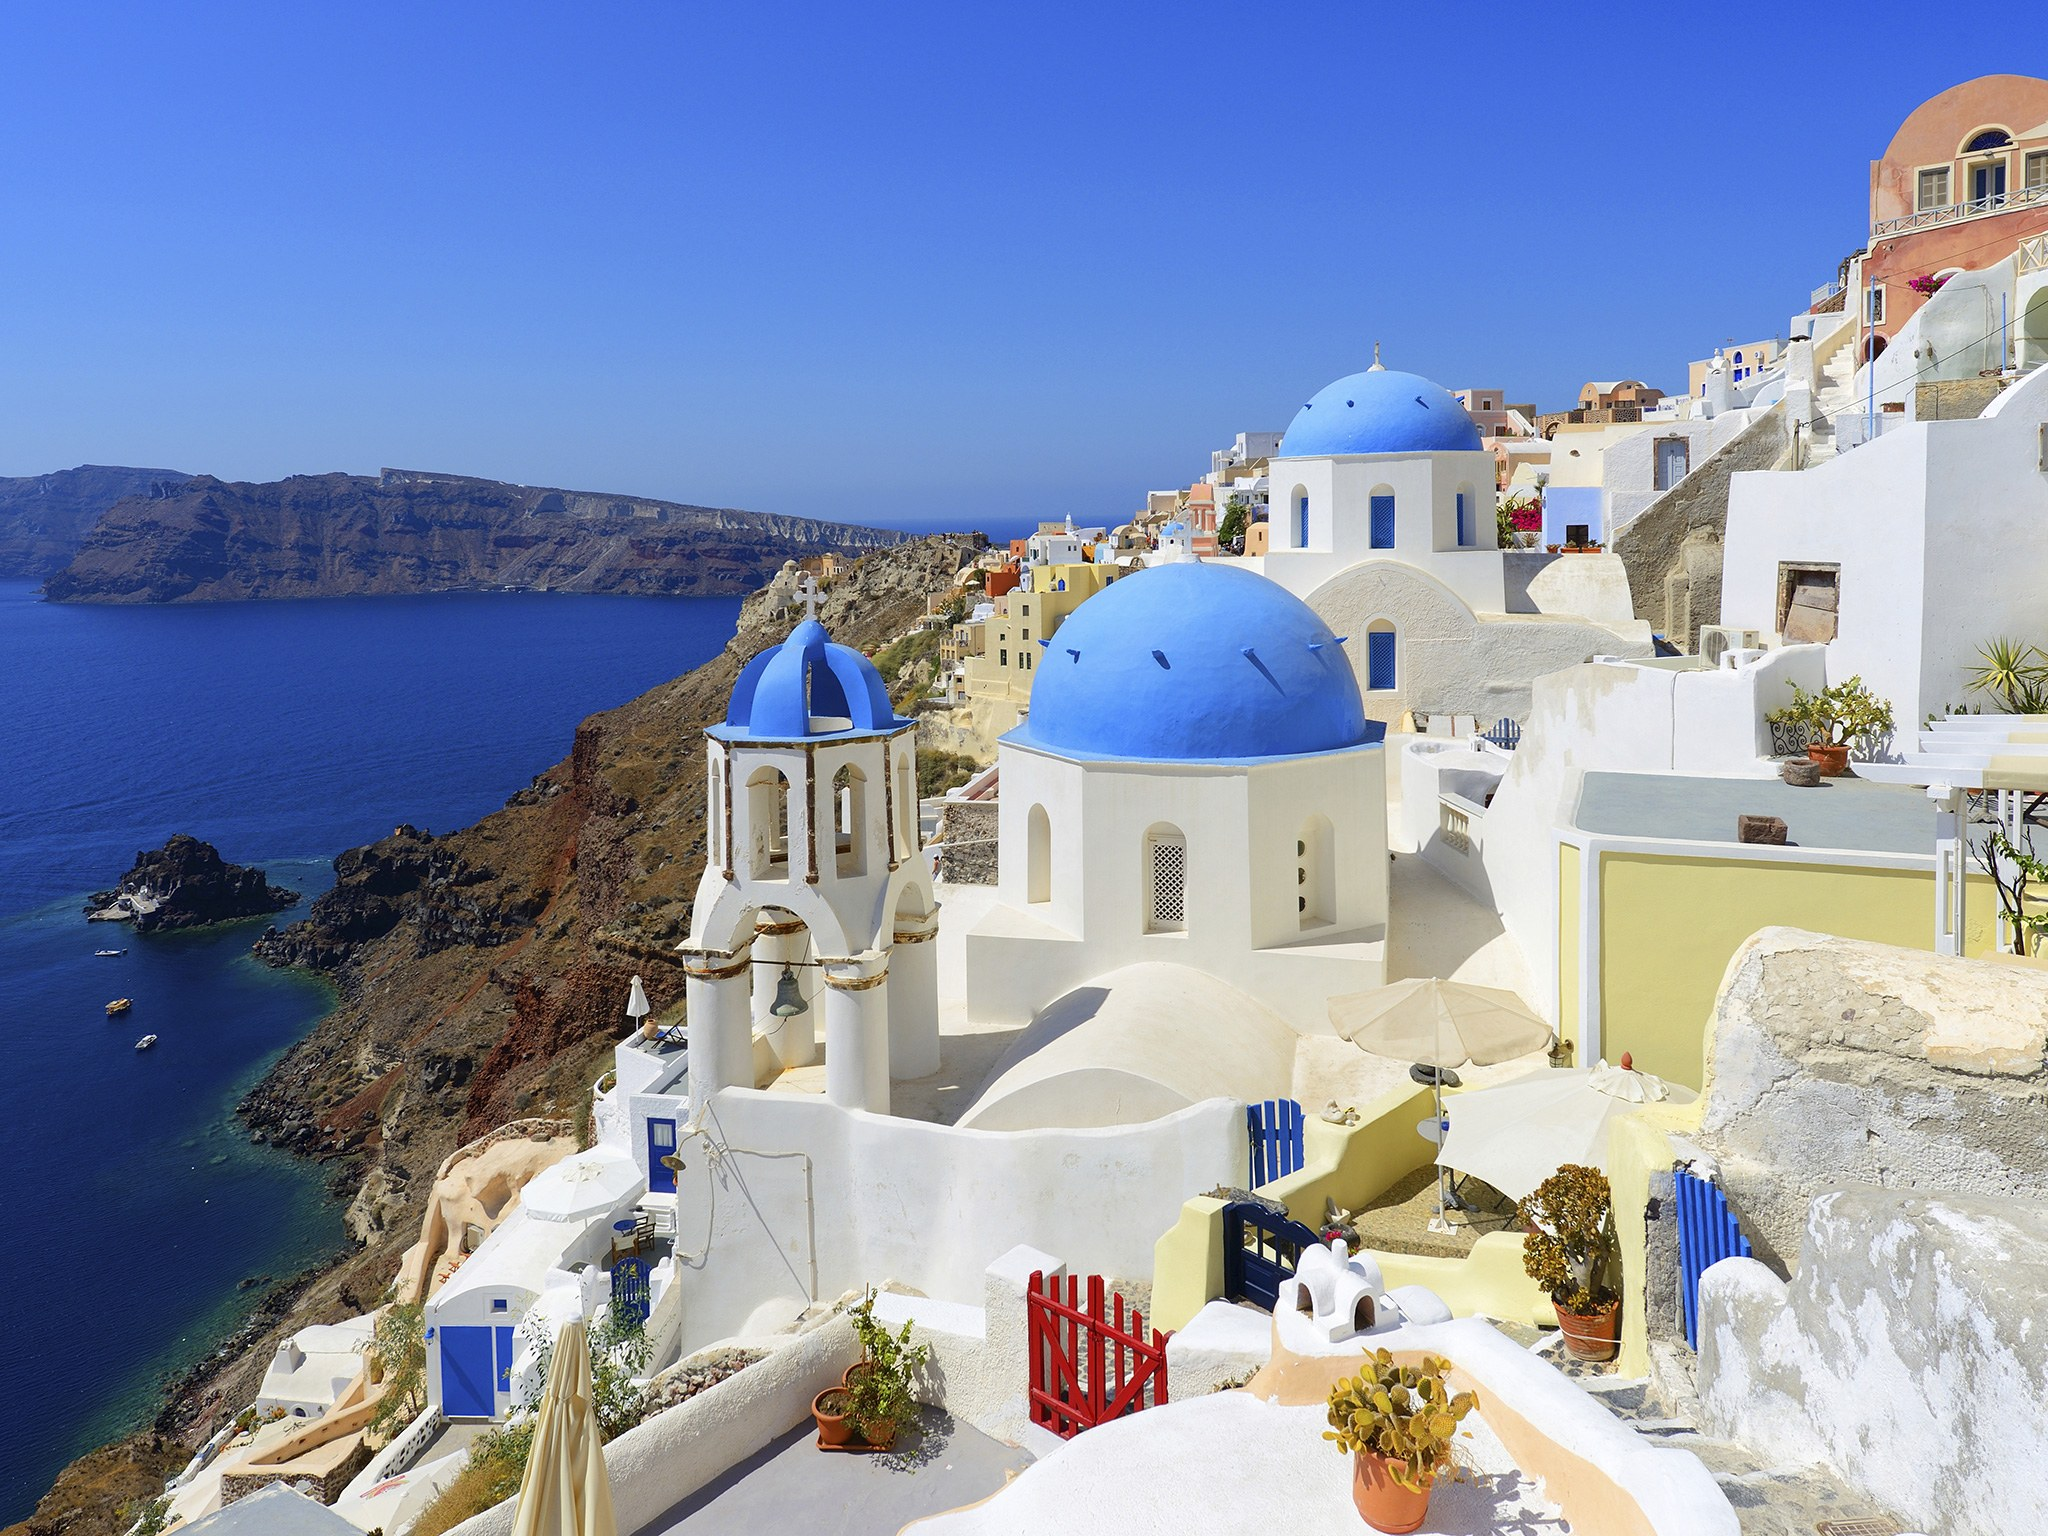 Idyllic village Oia on Santorini island, Greece Full HD ...